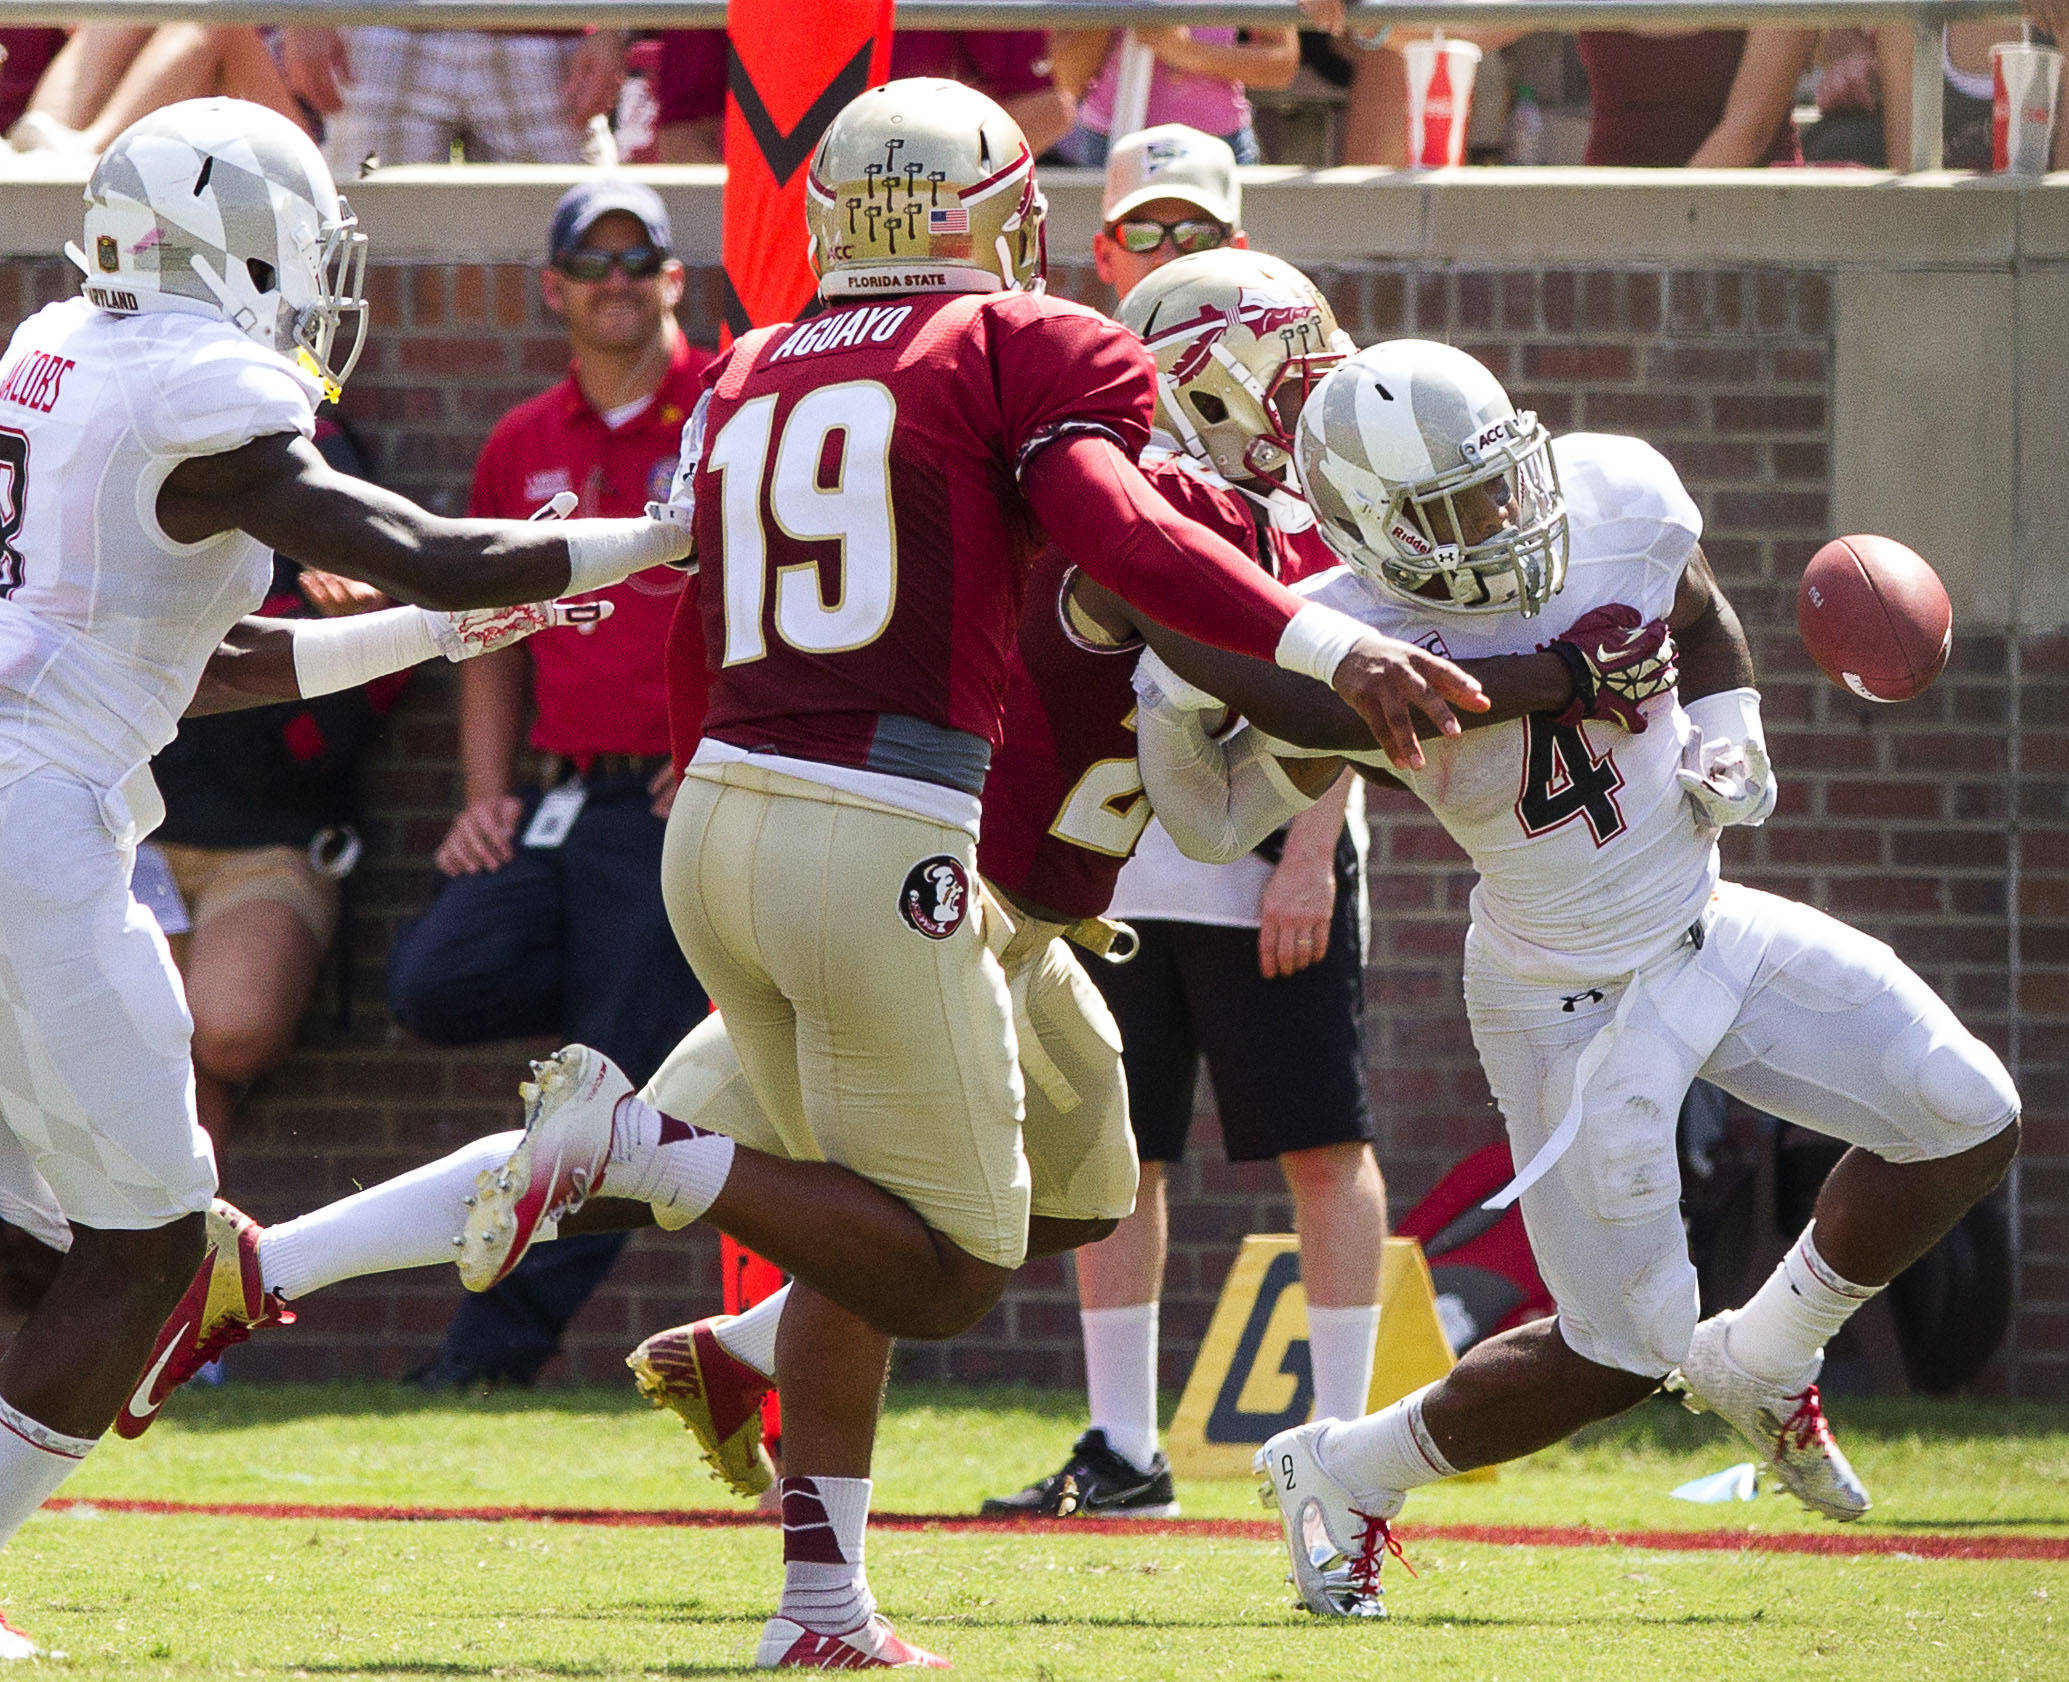 Lamarcus Joyner (20) strips the ball during FSU Football's 63-0 shutout of Maryland on Saturday, October 5, 2013 in Tallahassee, Fla.